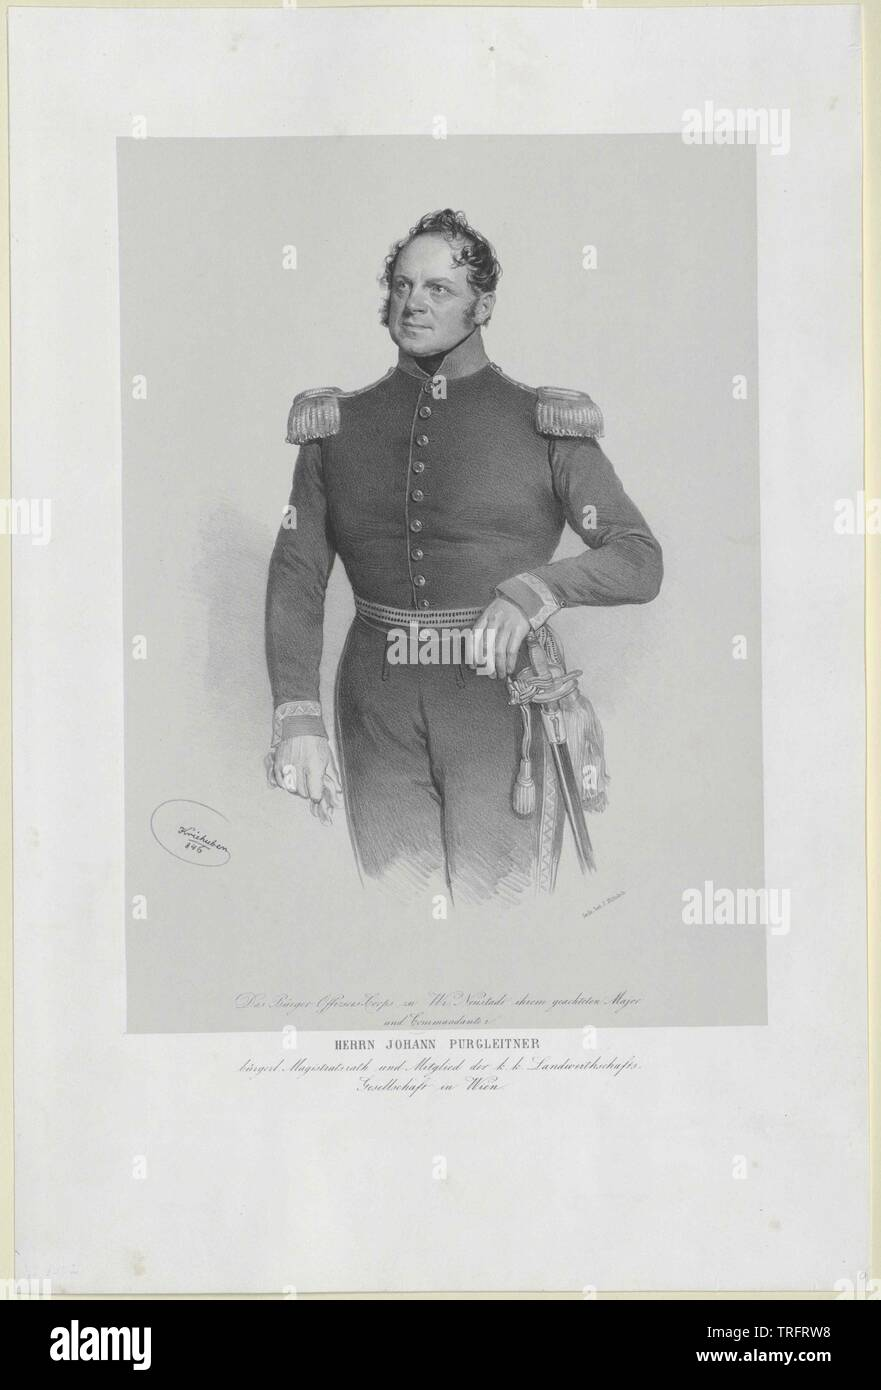 Purgleitner, Johann, lebte ca. 1855, Additional-Rights - Clearance-Info - Not-Available Stockfoto